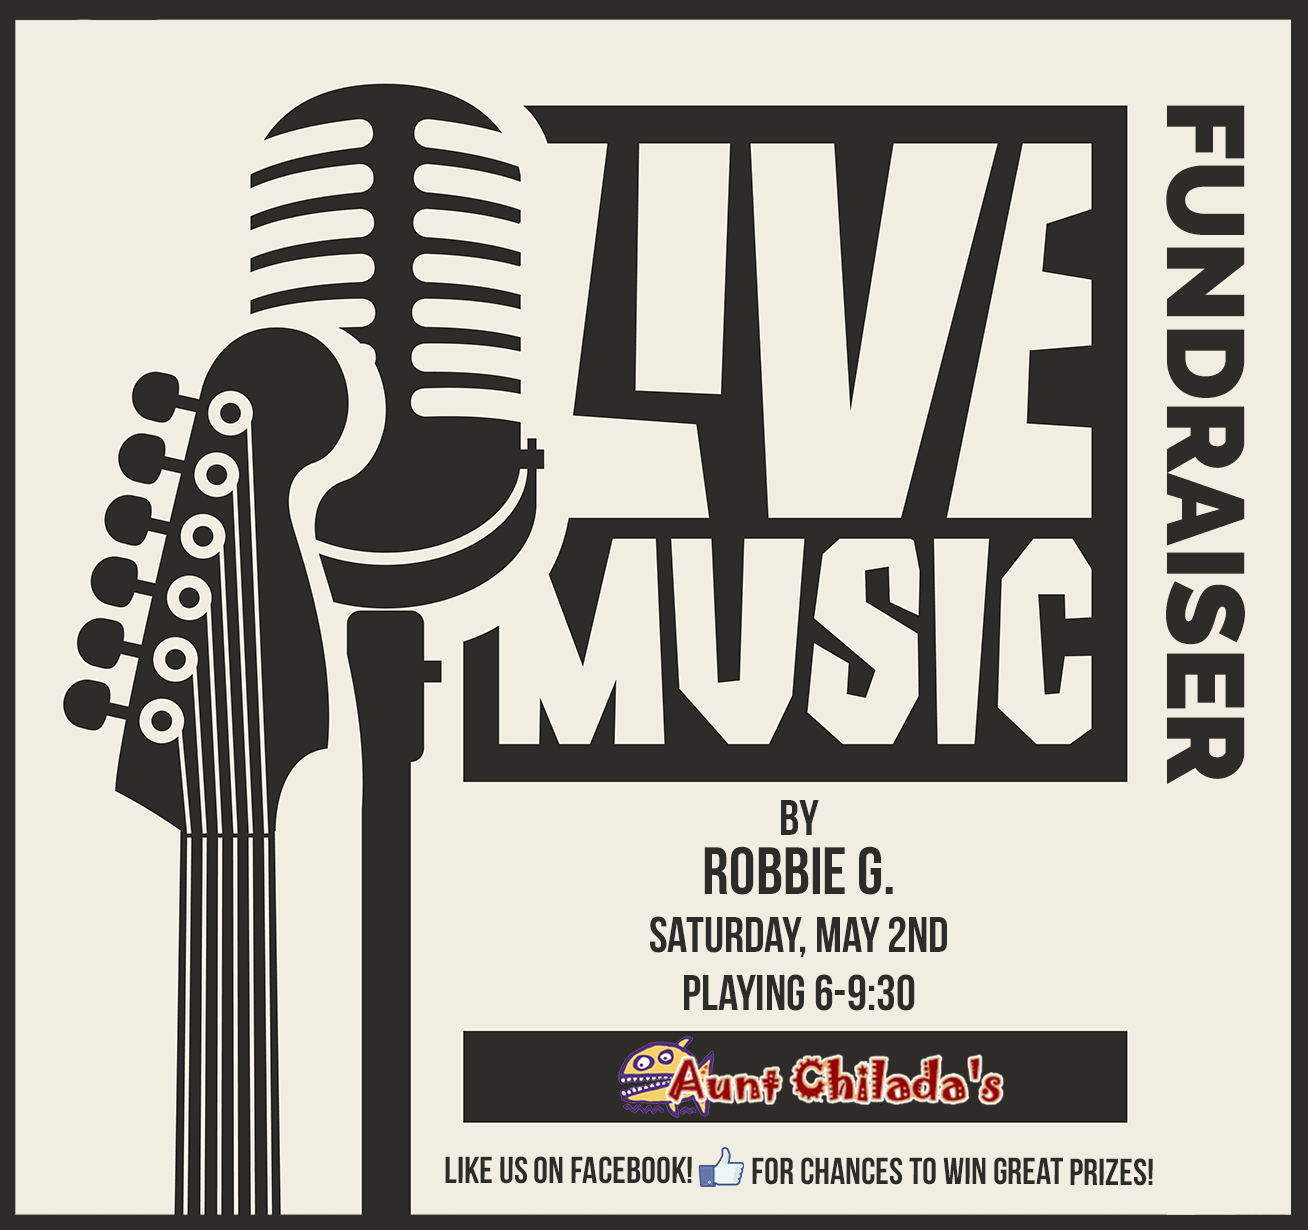 Live music by Robbie G. Fundraiser on Saturday May 2nd from 6 to 9:30 pm